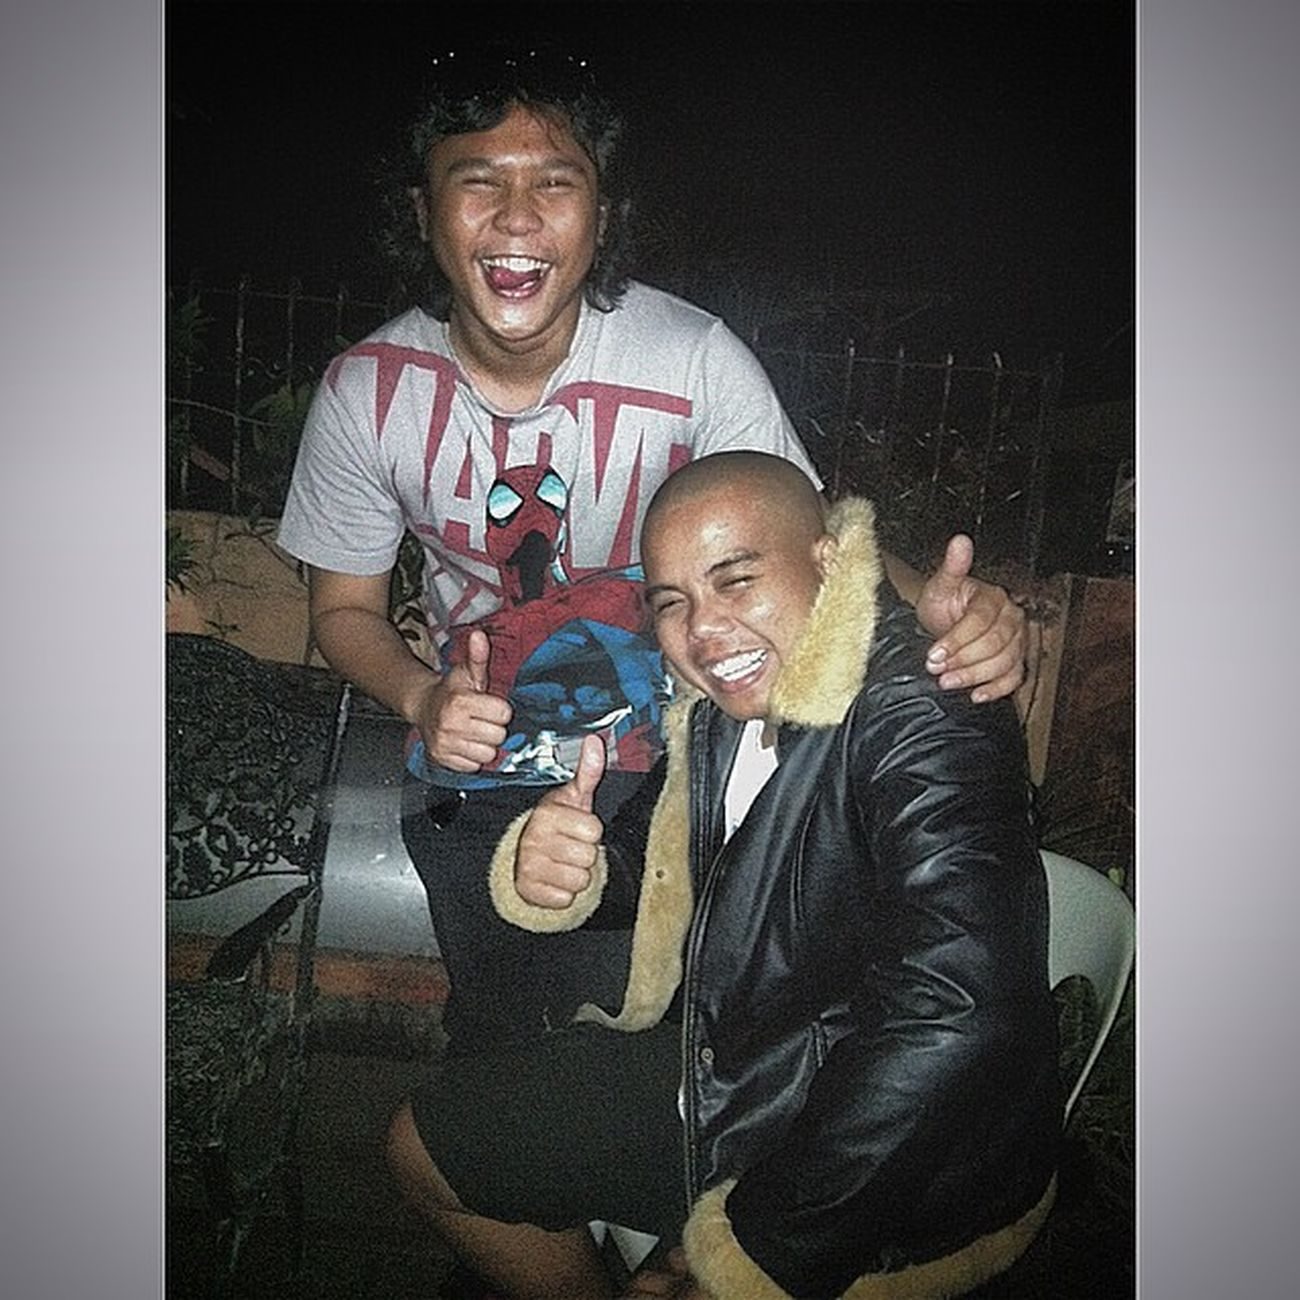 Reunited! Papa Roy with usher the beerday boy! hahaha.. ang mga hasi! Drinktilwedrop